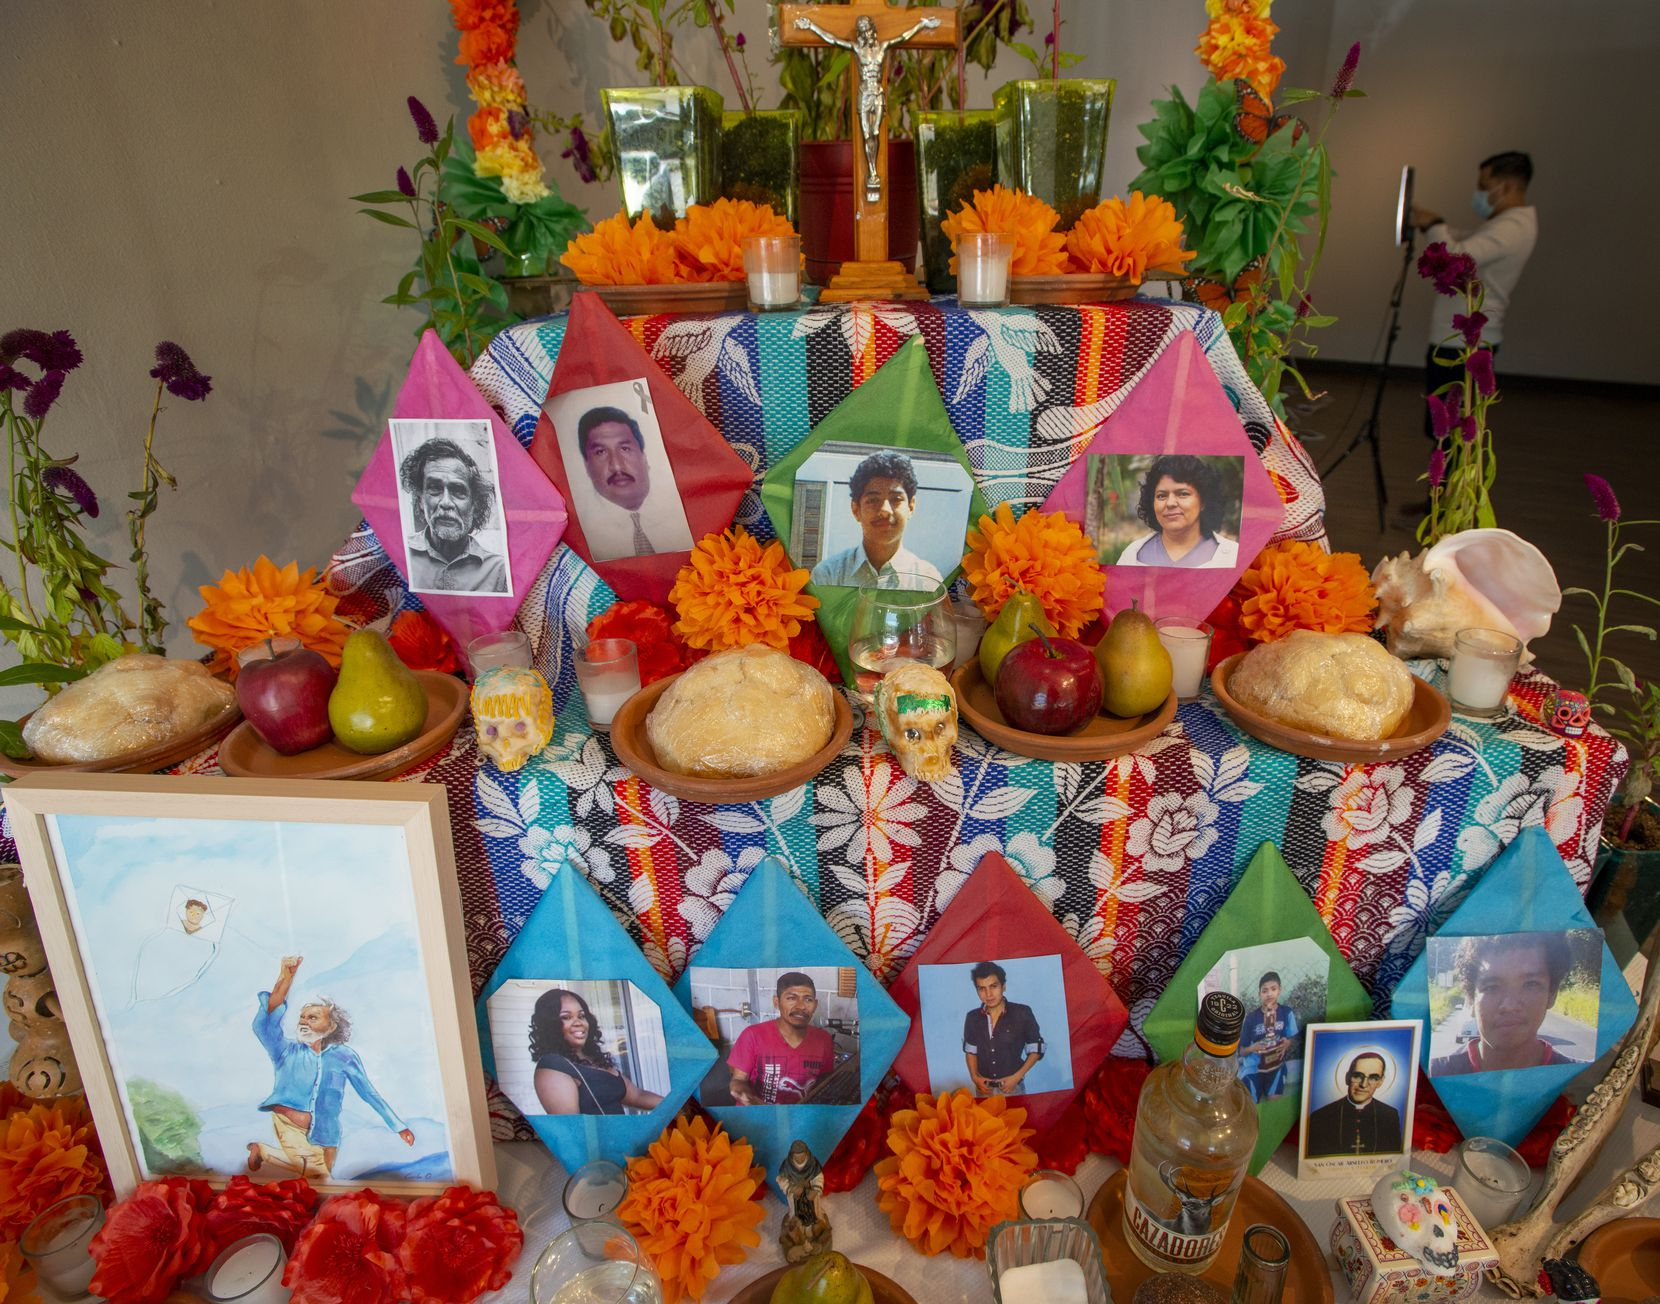 This Dia de Los Muertos altar by Pie de Lucha arts collective features a photo of the deceased 12-year-old Santos Rodriguez (below crucifix), at the Oak Cliff Cultural Center on October 30, 2020. Santos was murdered in 1973 in one of the nation's worst cases of police brutality.